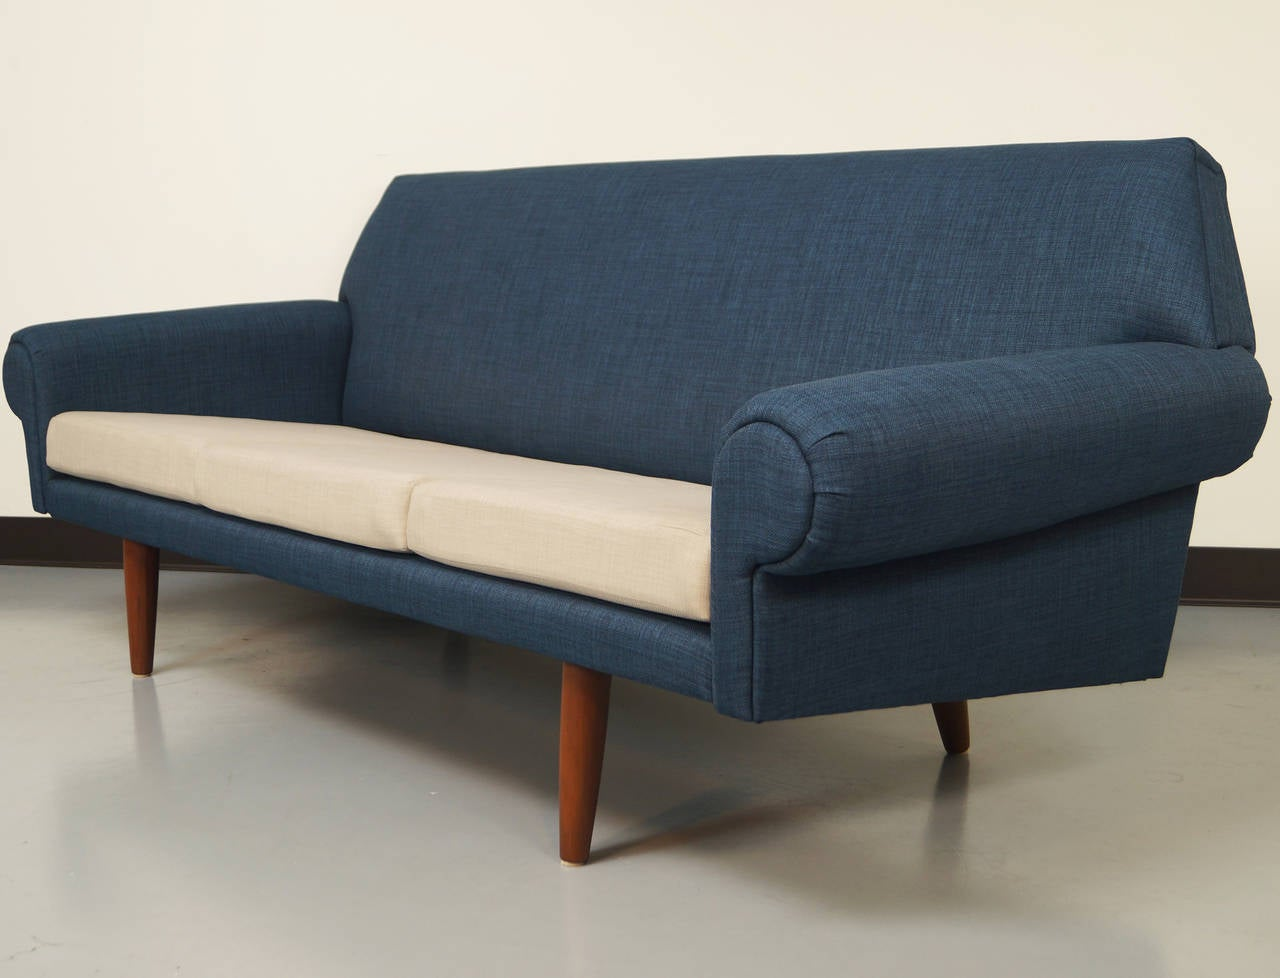 Danish Modern Sofa By Hans Wegner At 1stdibs